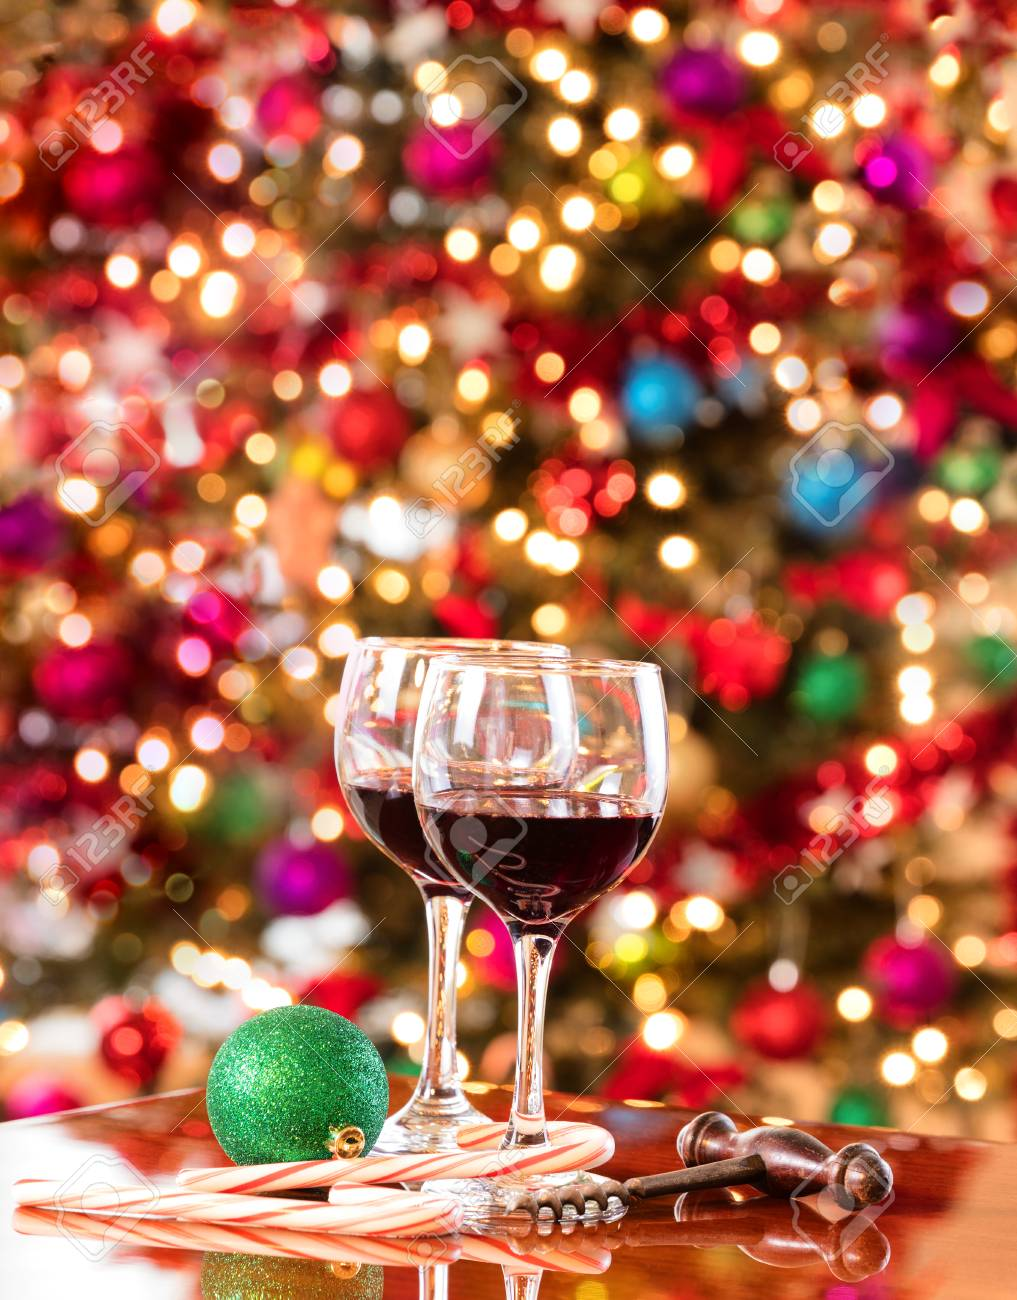 Red Wine On Mahoney Table With Bright Christmas Tree Lights In Background Vertical Format Layout